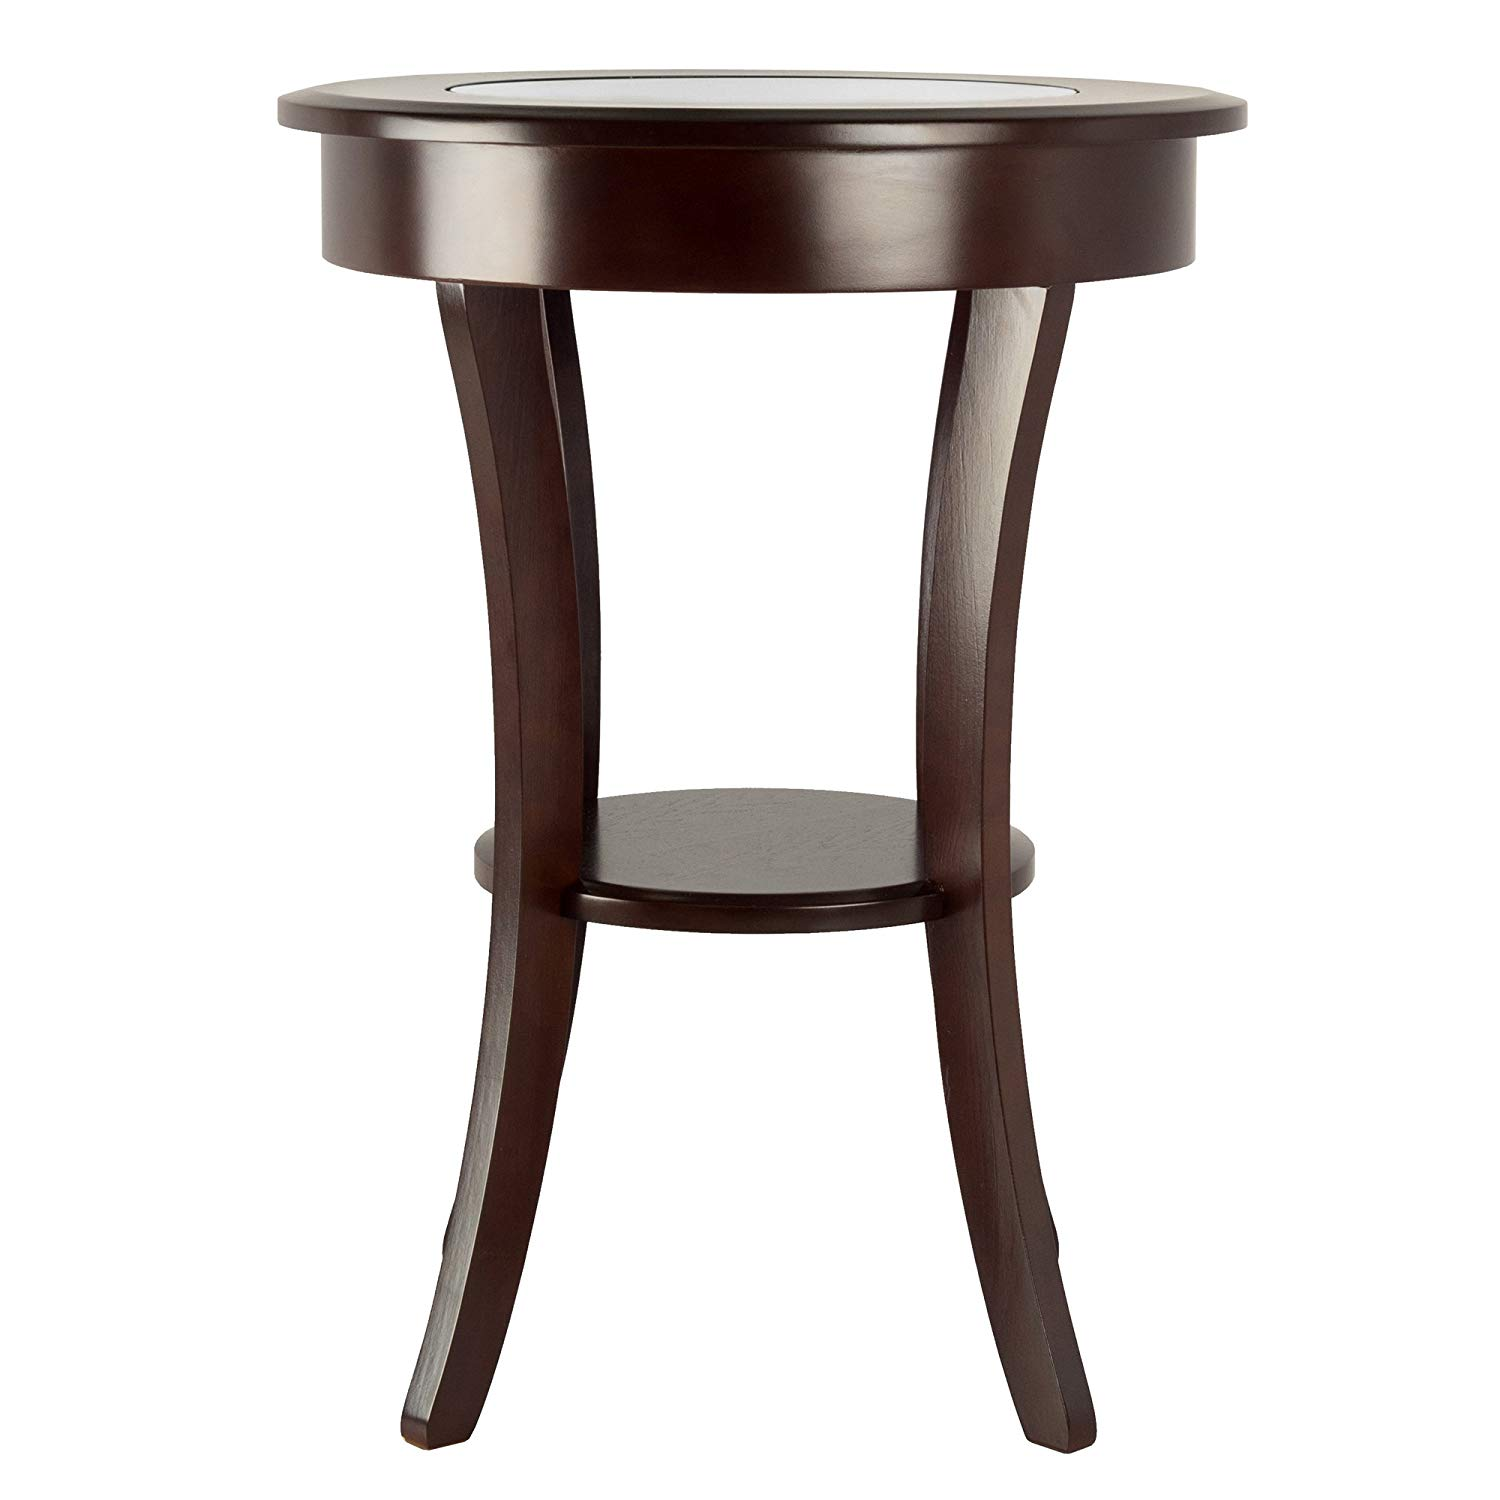 winsome wood cassie accent table cappuccino instructions kitchen dining all modern furniture industrial end tables bathroom clock room storage what color sage inexpensive patio